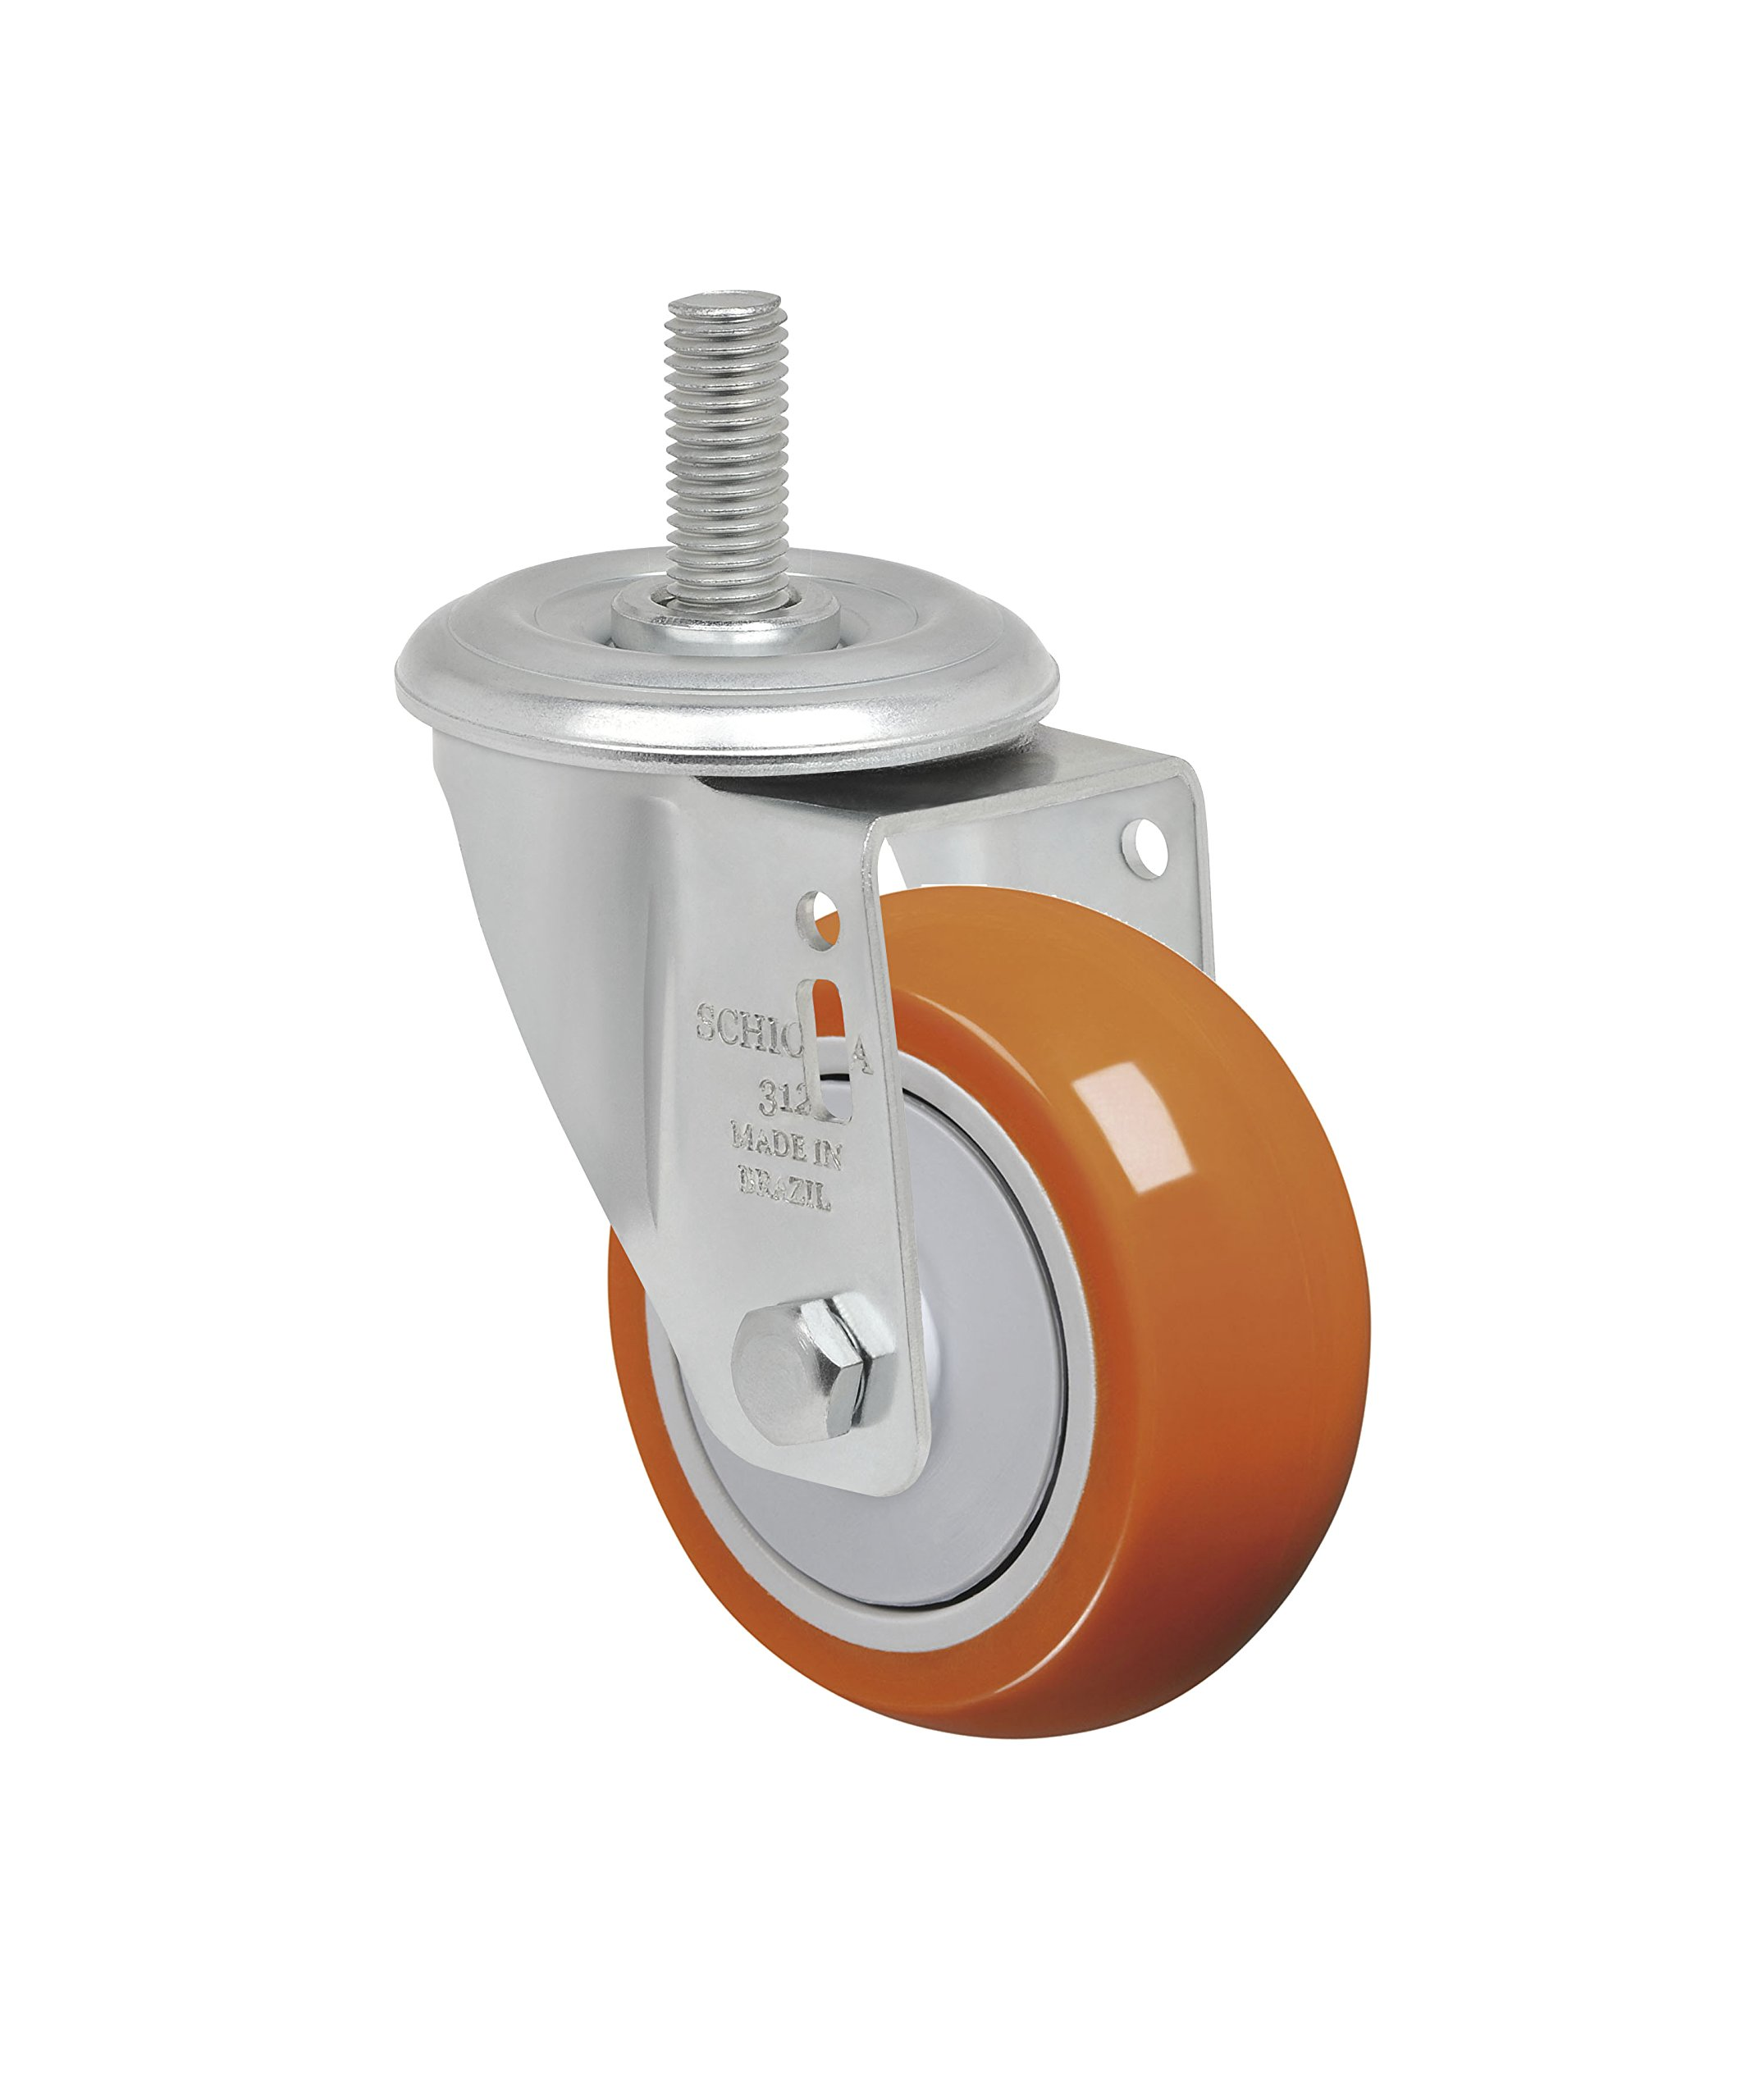 Schioppa L12 Series, GLEEF 312 UPE, 3 x 1-1/4'' Swivel Caster, Non-Marking Polyurethane Precision Ball Bearing Wheel, 175 lbs, 3/8'' Diameter x 1-1/2'' Length Threaded Stem